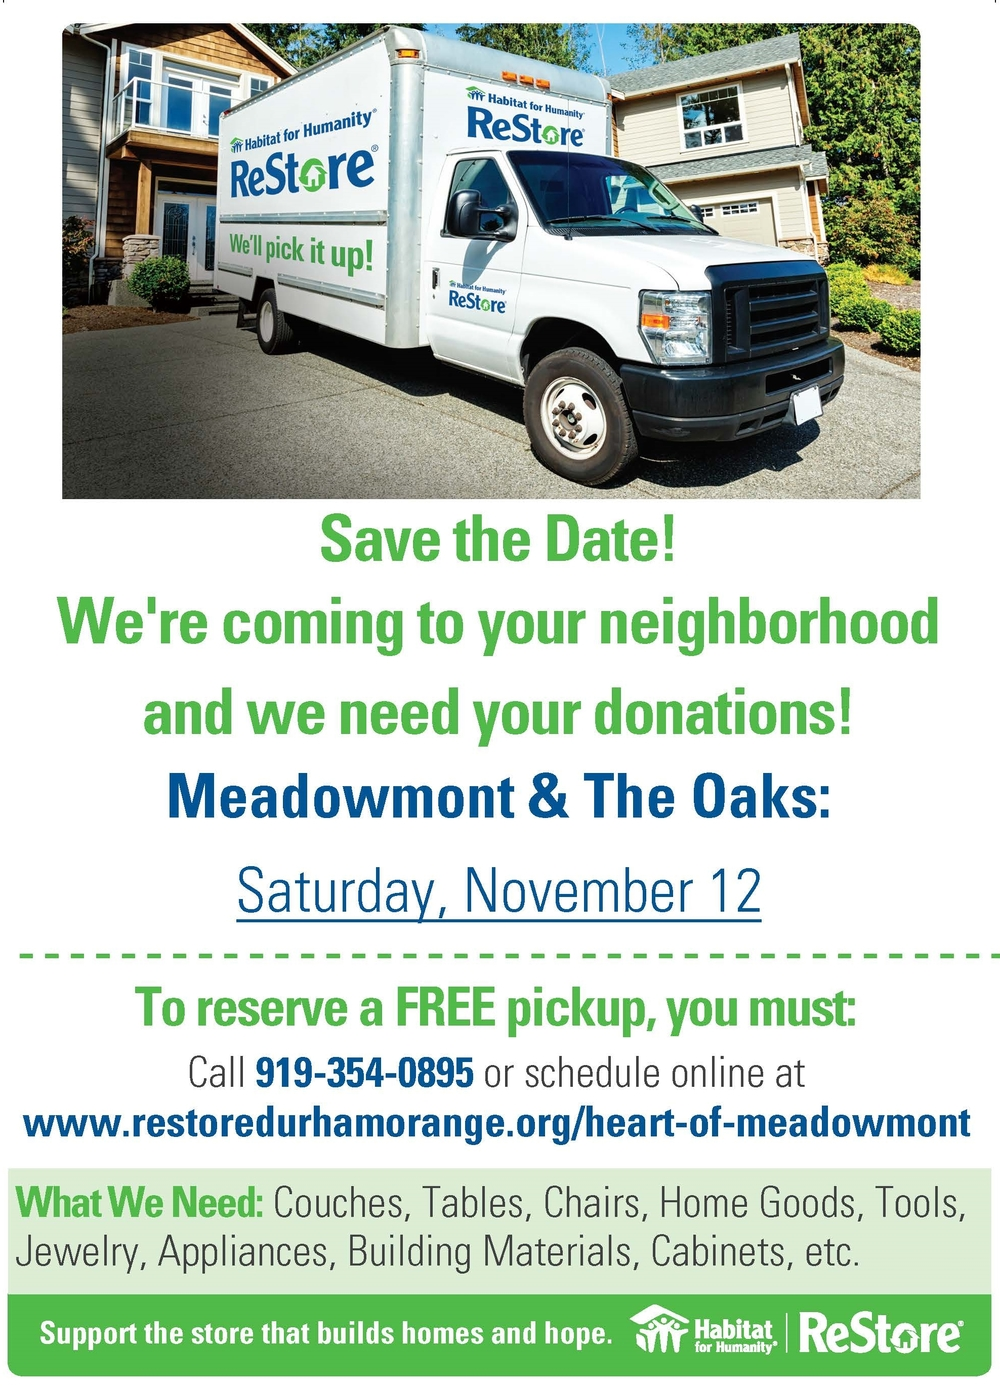 Heart of Meadowmont Donation Blitz.jpg